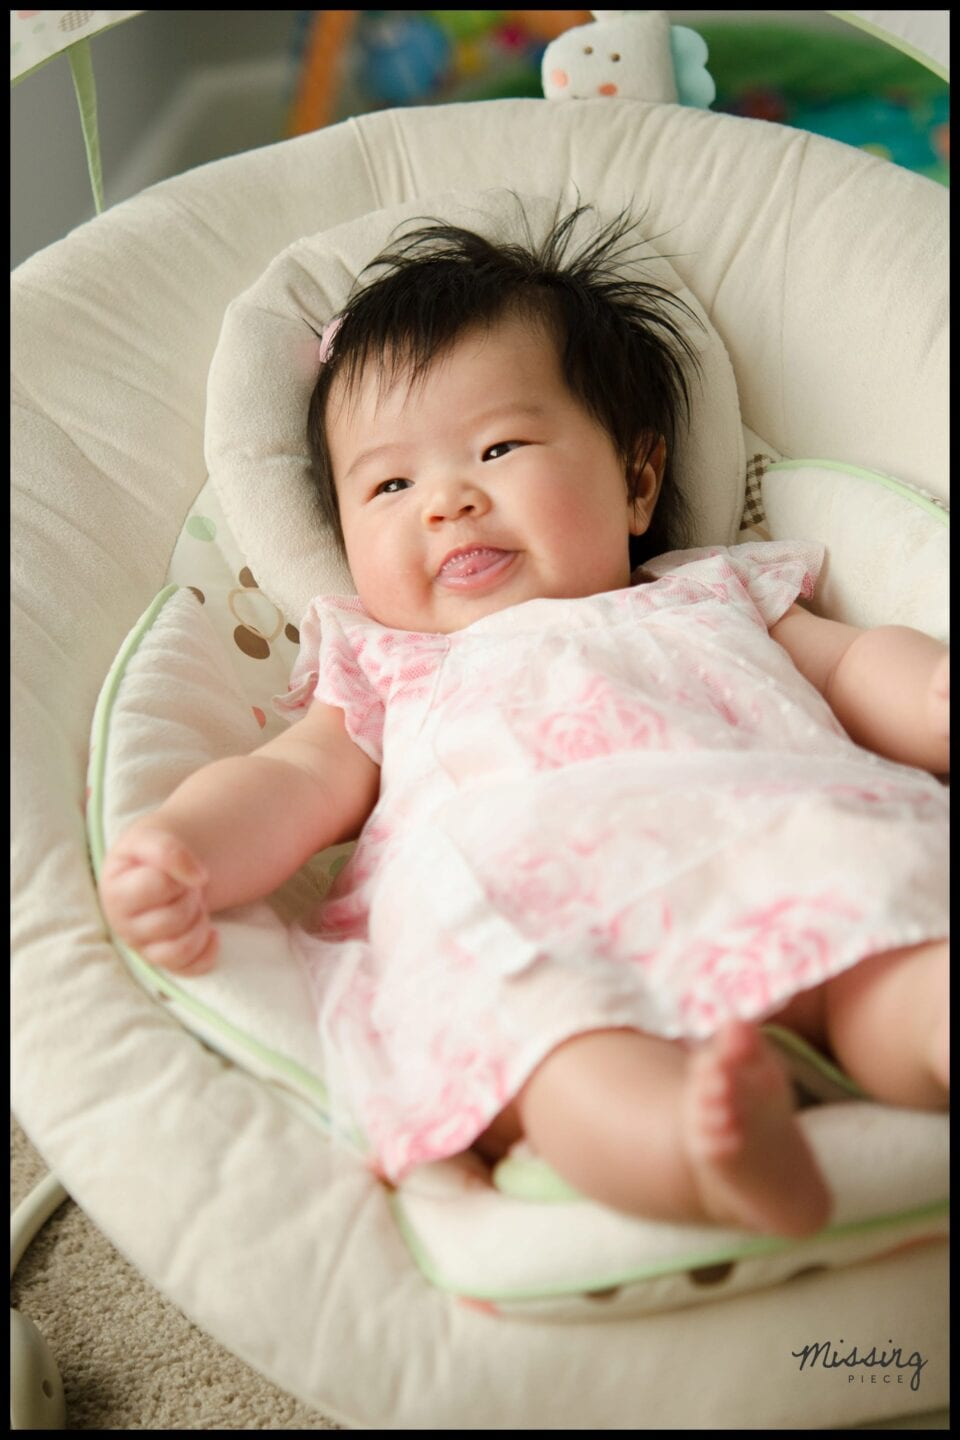 A baby sits on a crib beside a soft lit window with a gentle smile